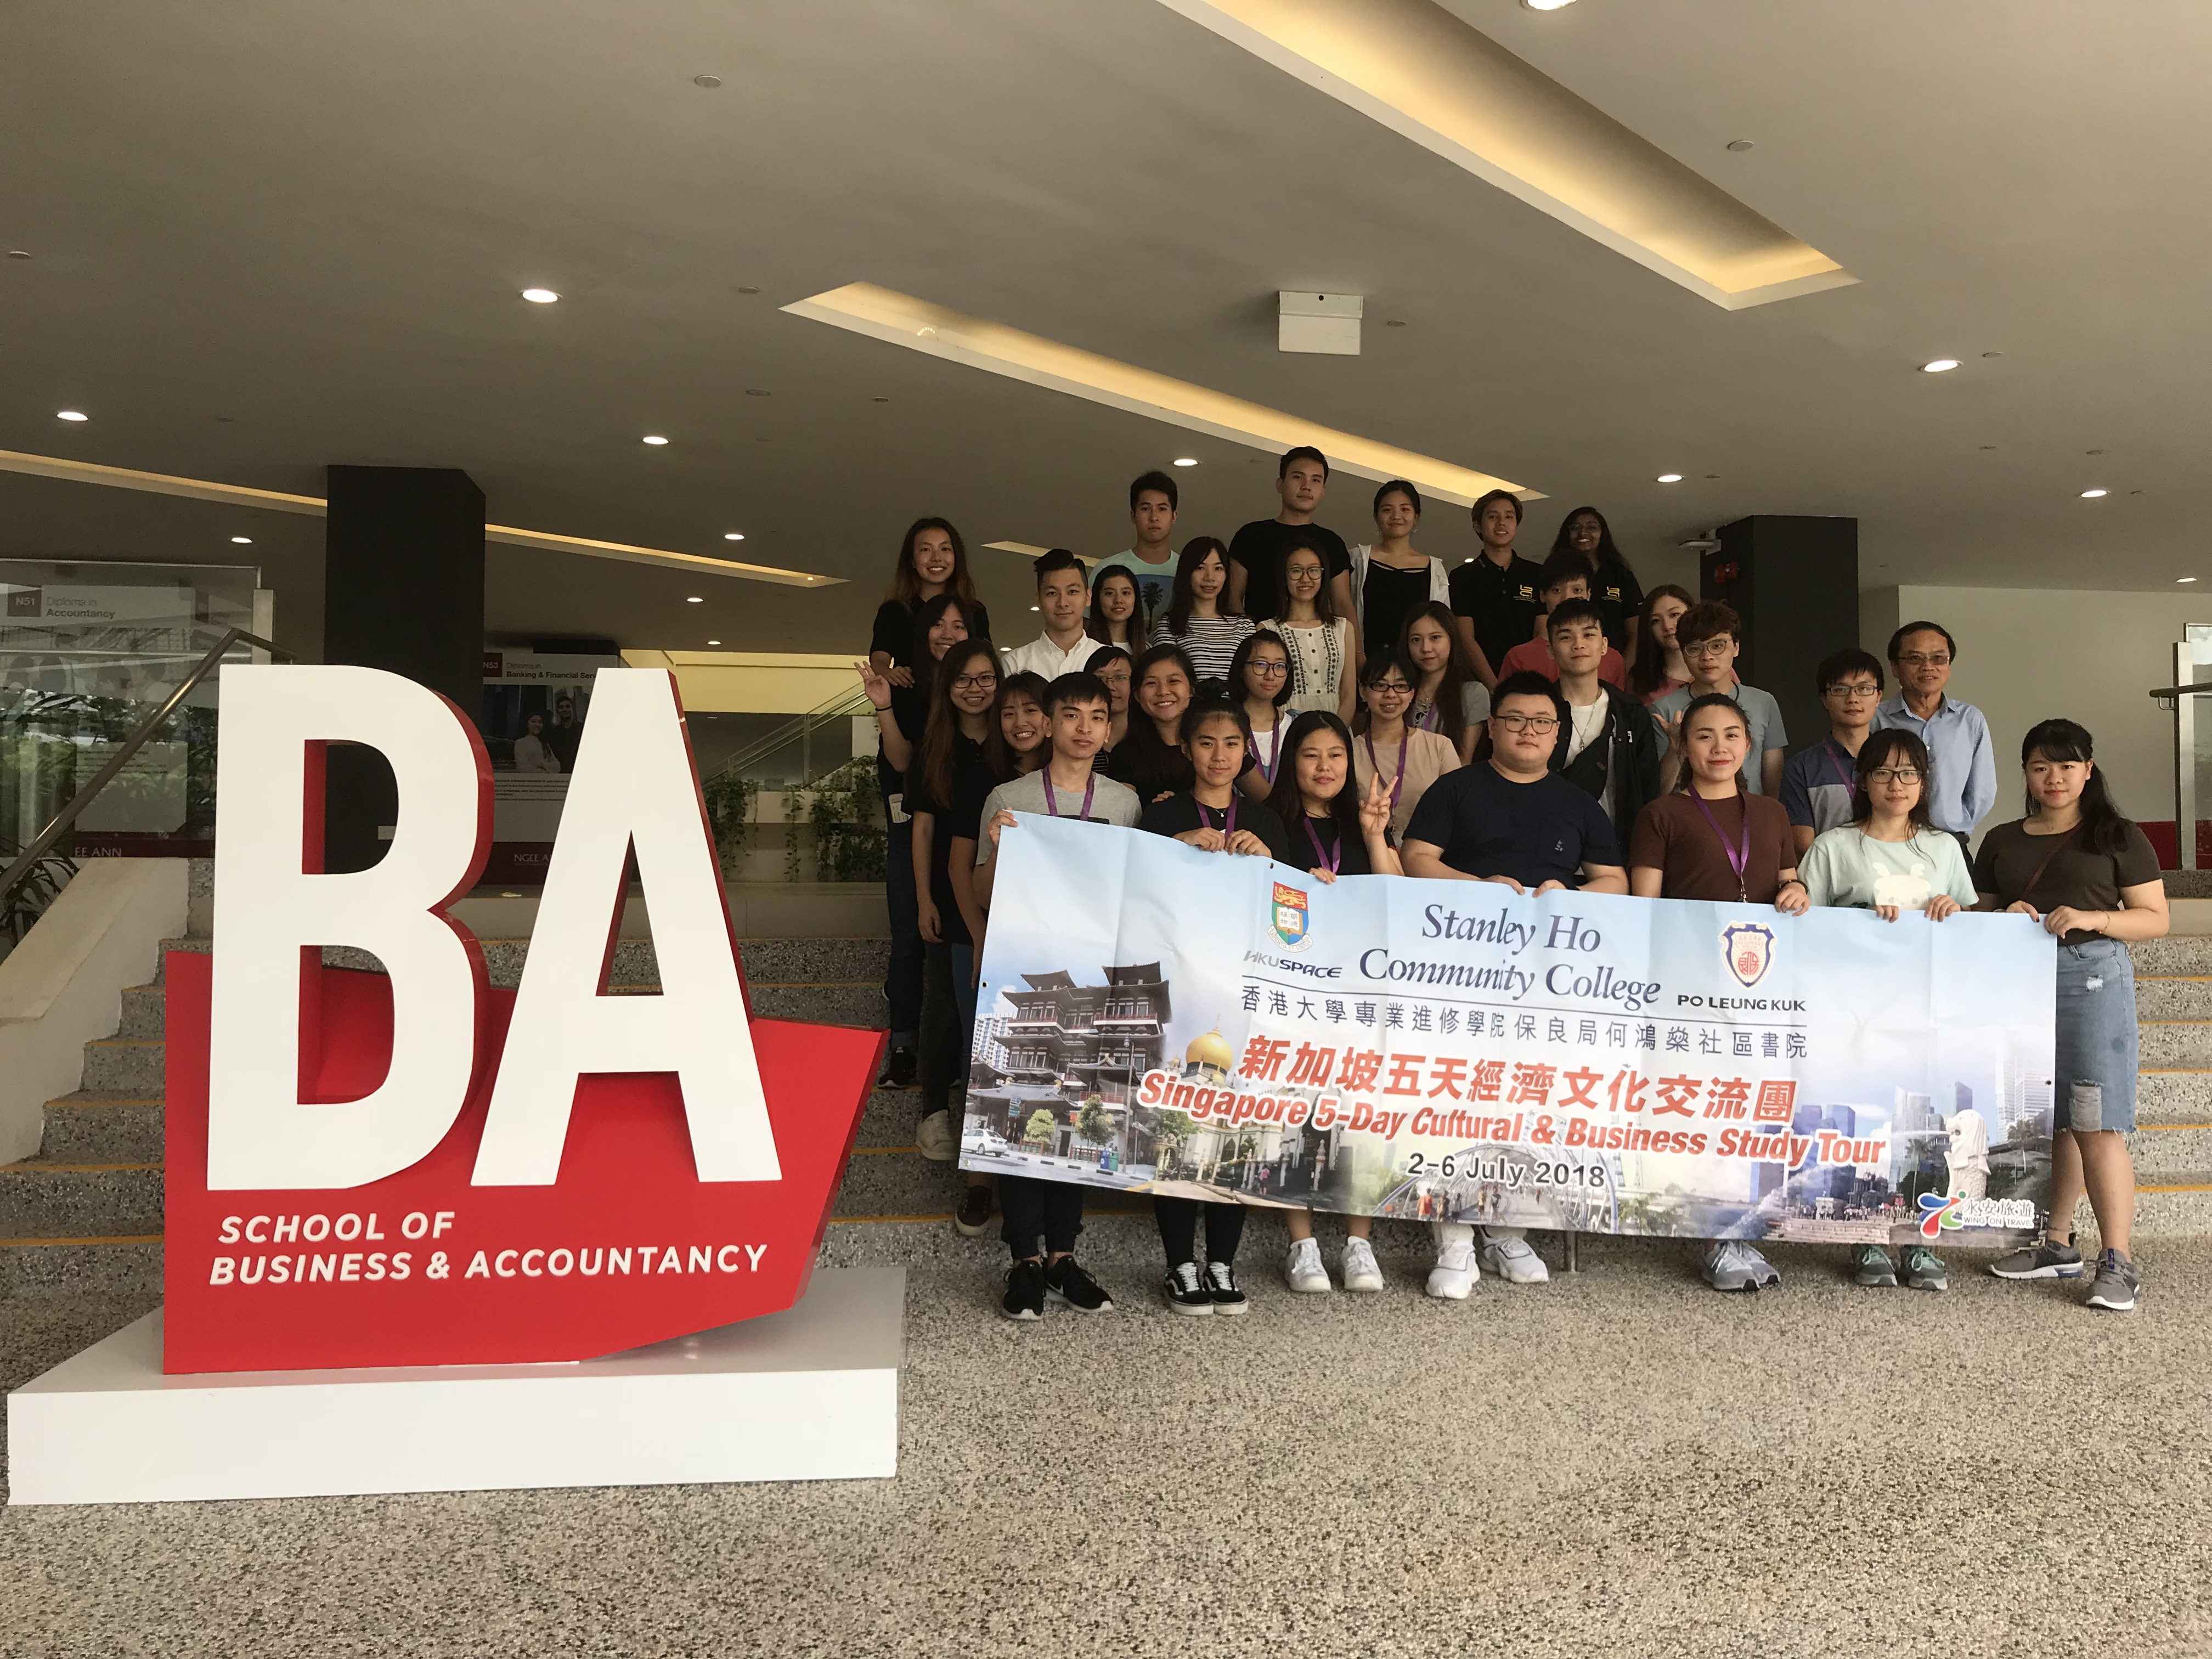 Singapore Business and Cultural Study Tour 2018 - Photo - 5